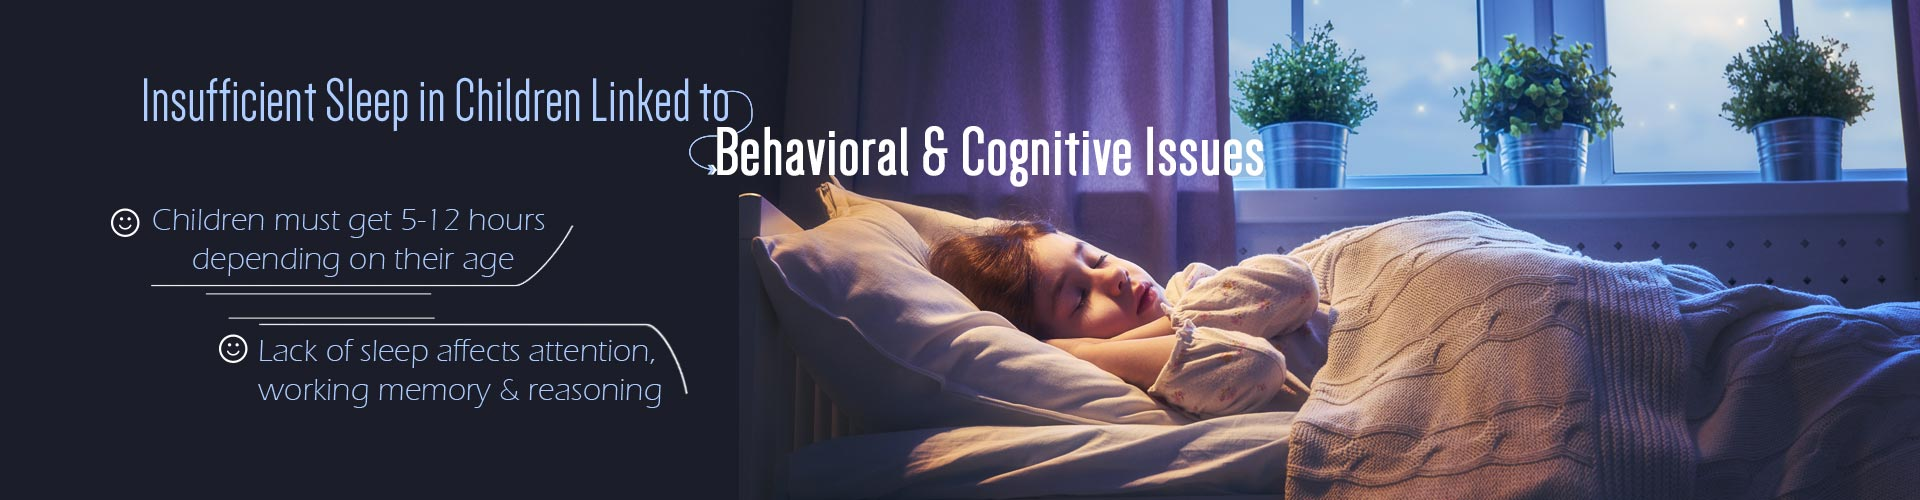 Insufficient Sleep in Children Linked to Behavioral & Cognitive Issues - Children must get 5-12 hours depending on their age - Lack of sleep affects attention, working memory & reasoning